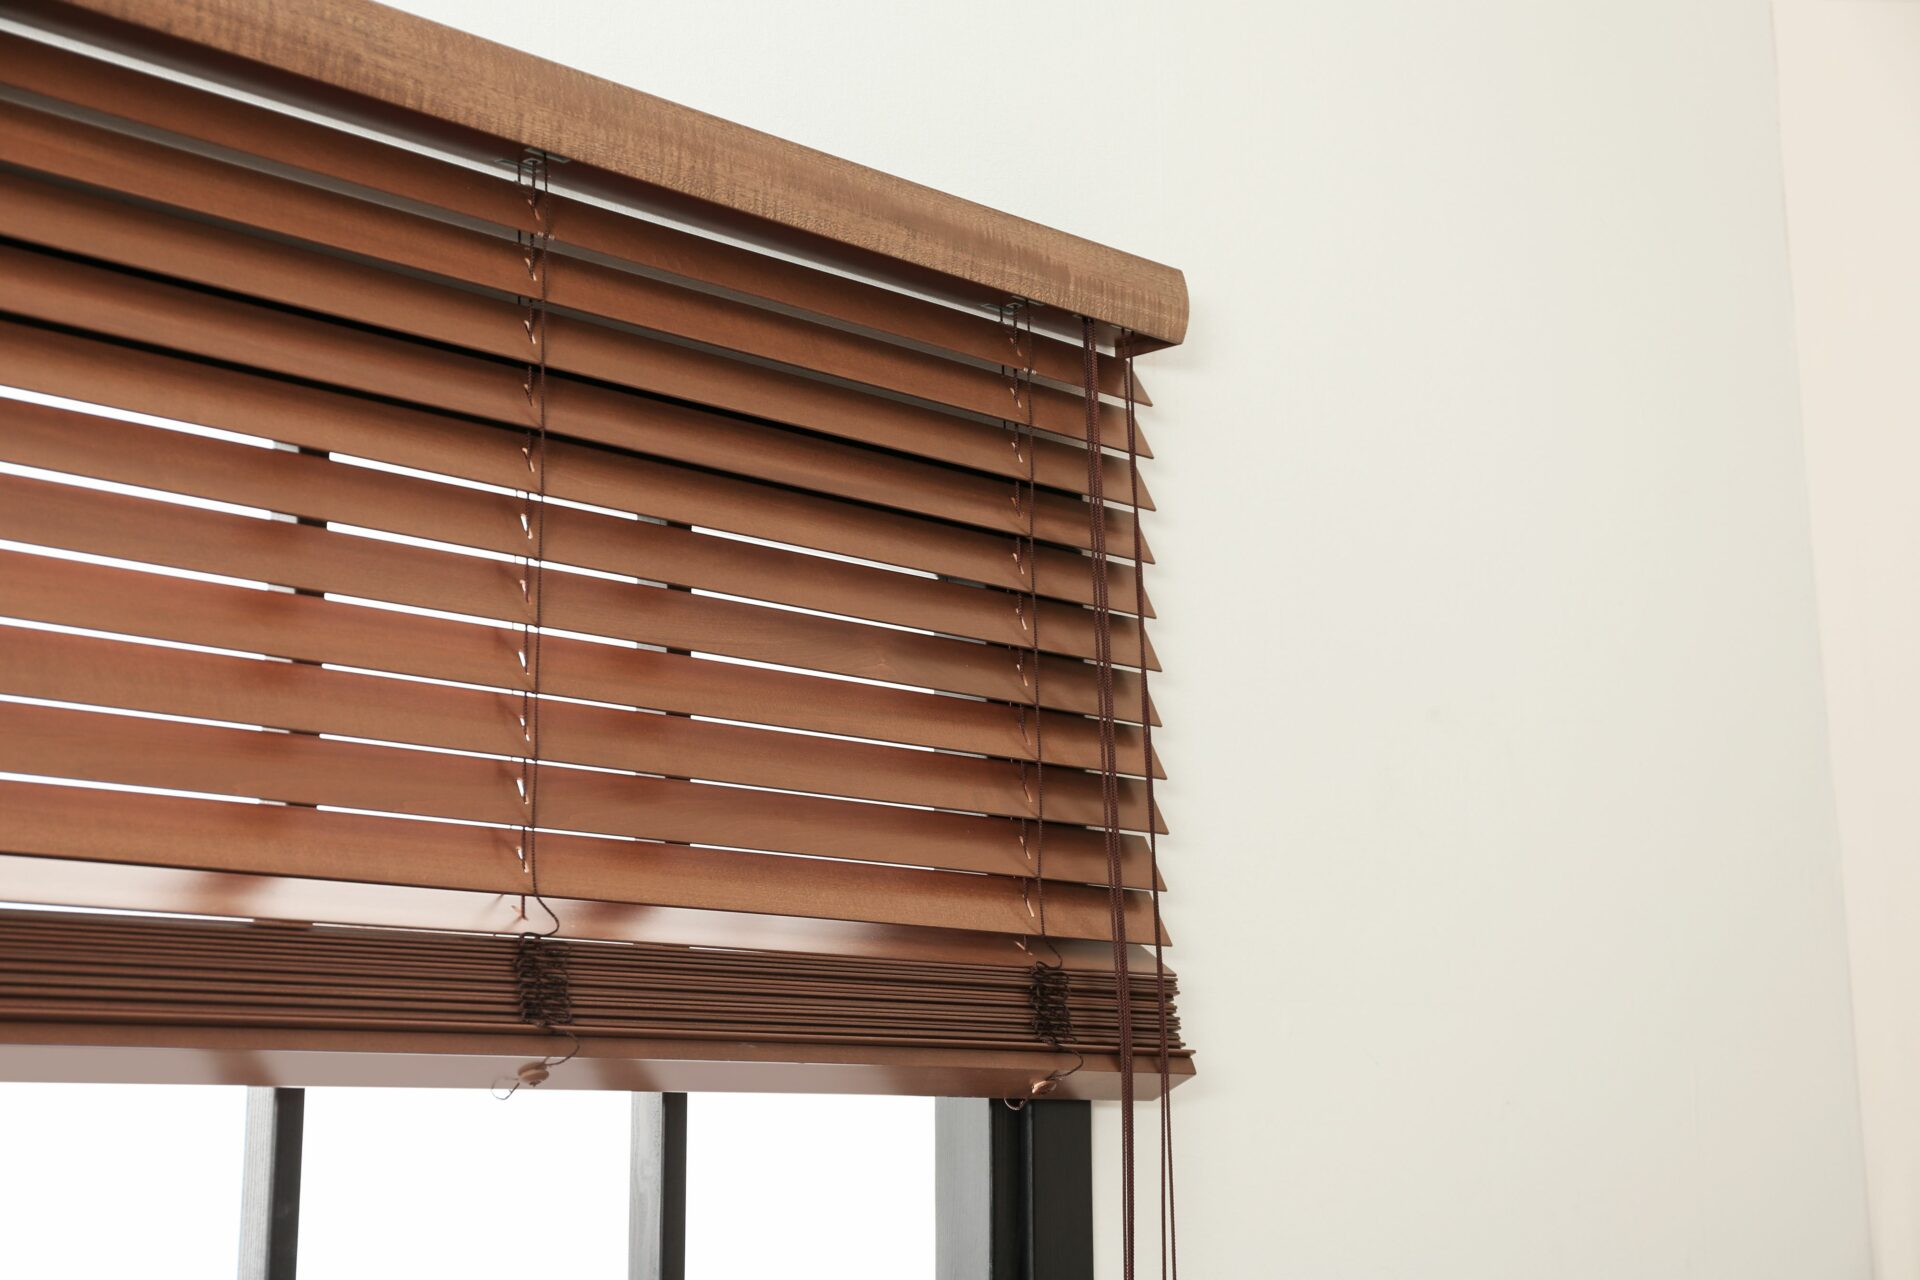 Faux wood blind is ideal option for bathroom